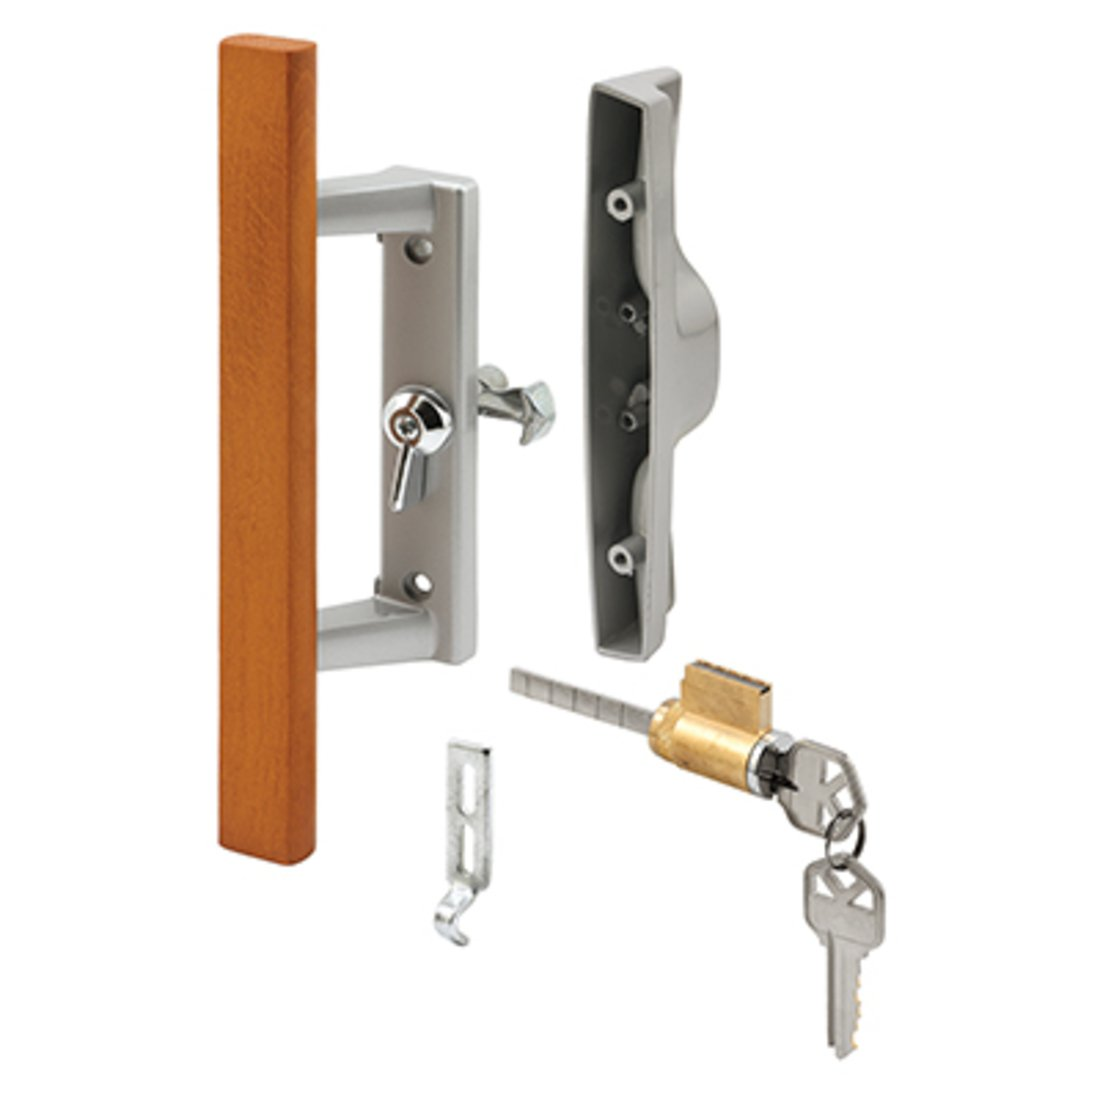 Sliding Glass Patio Door Handle Set with Internal Lock for Viking Doors, 3-15/16'' Screw Holes, Keyed, Wood/Aluminum